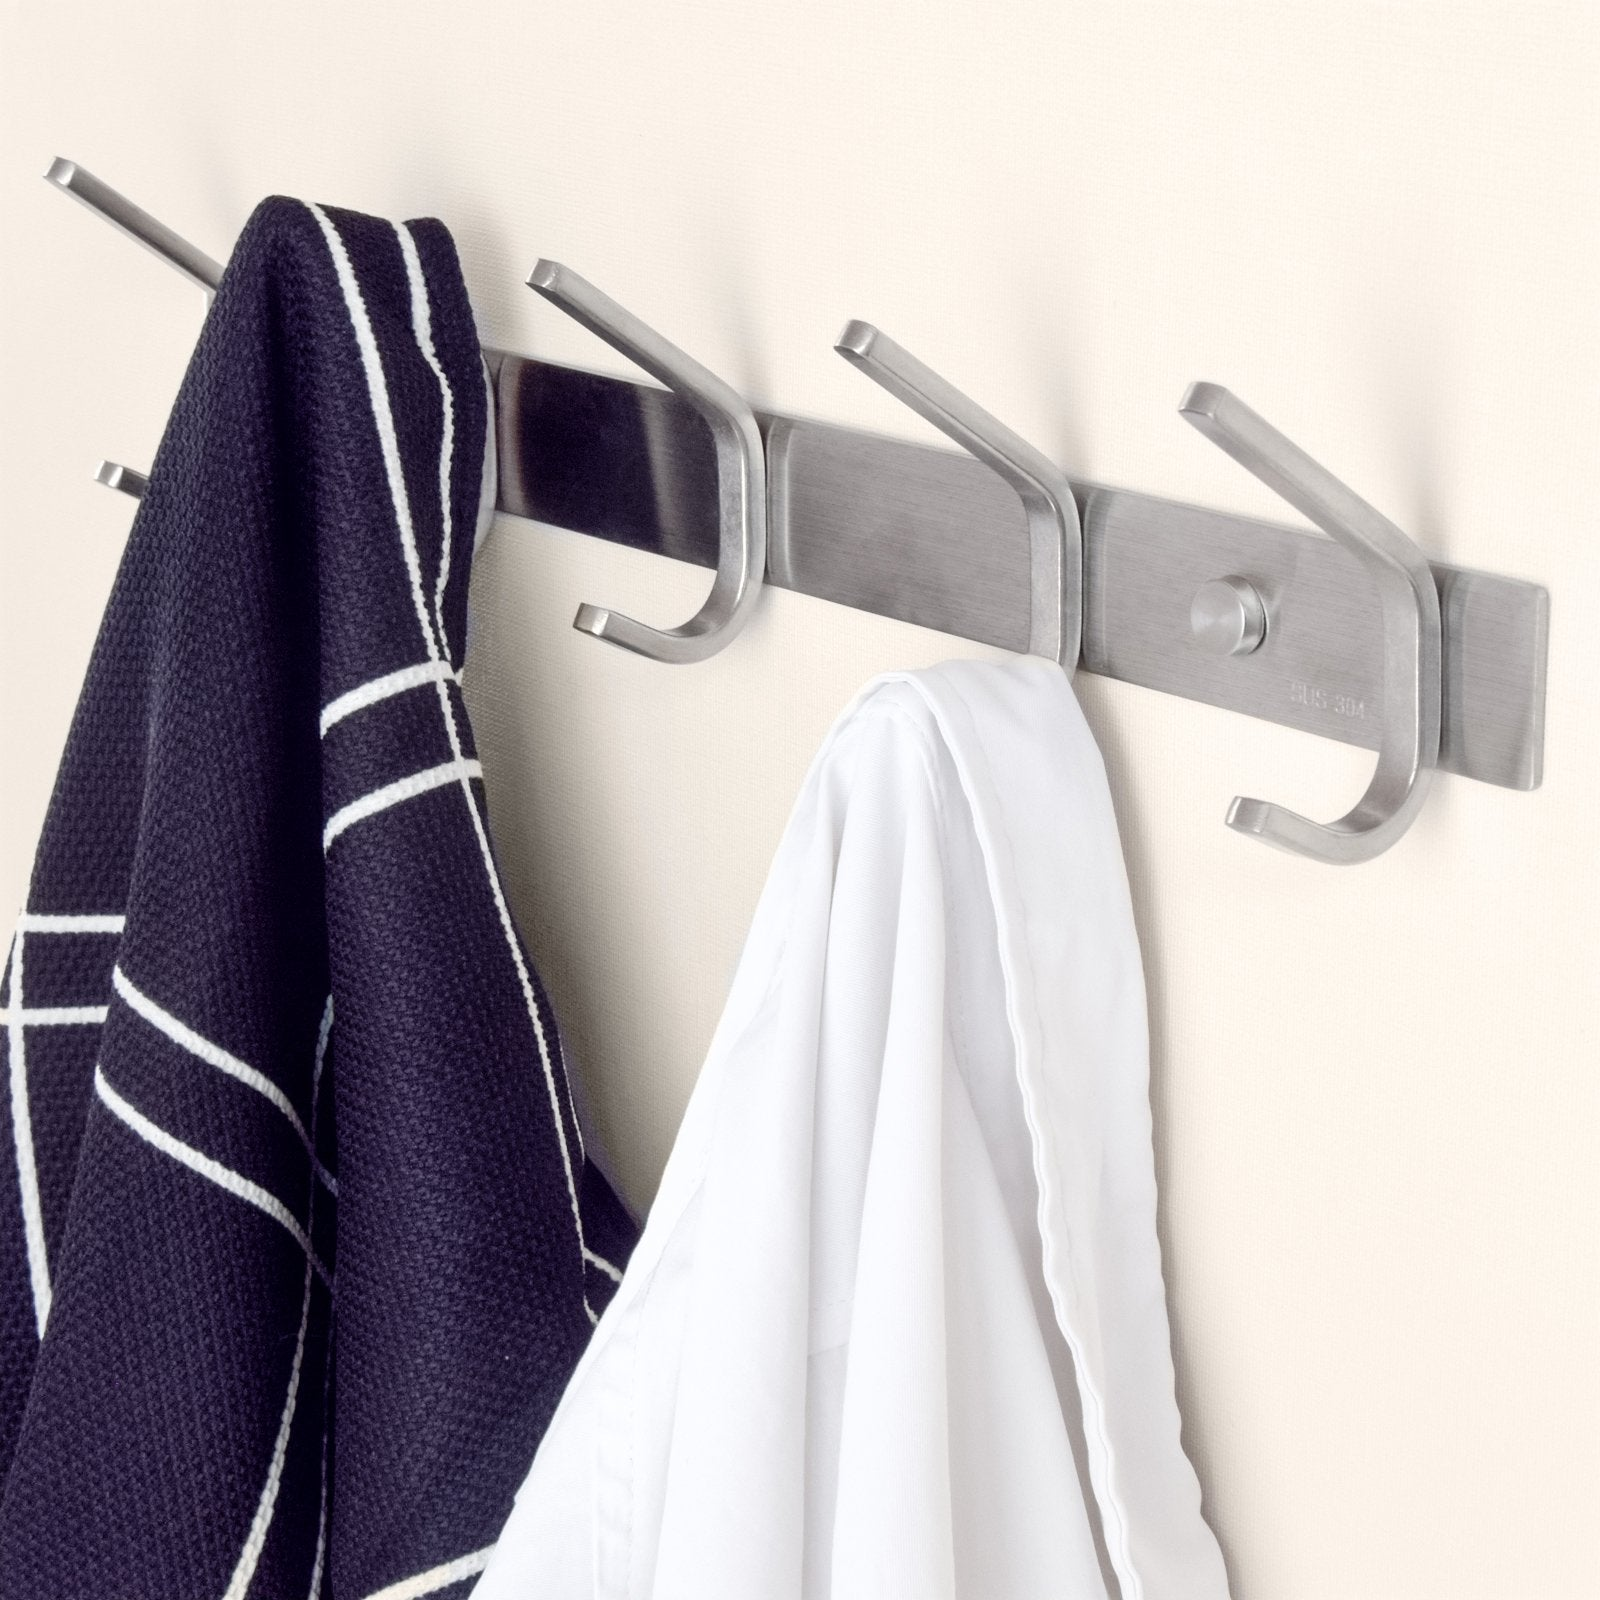 Amazon coat rack hooks durable stainless steel organizer rack with solid steel construction perfect for towels robes clothes for bathroom kitchen garage 8 hooks